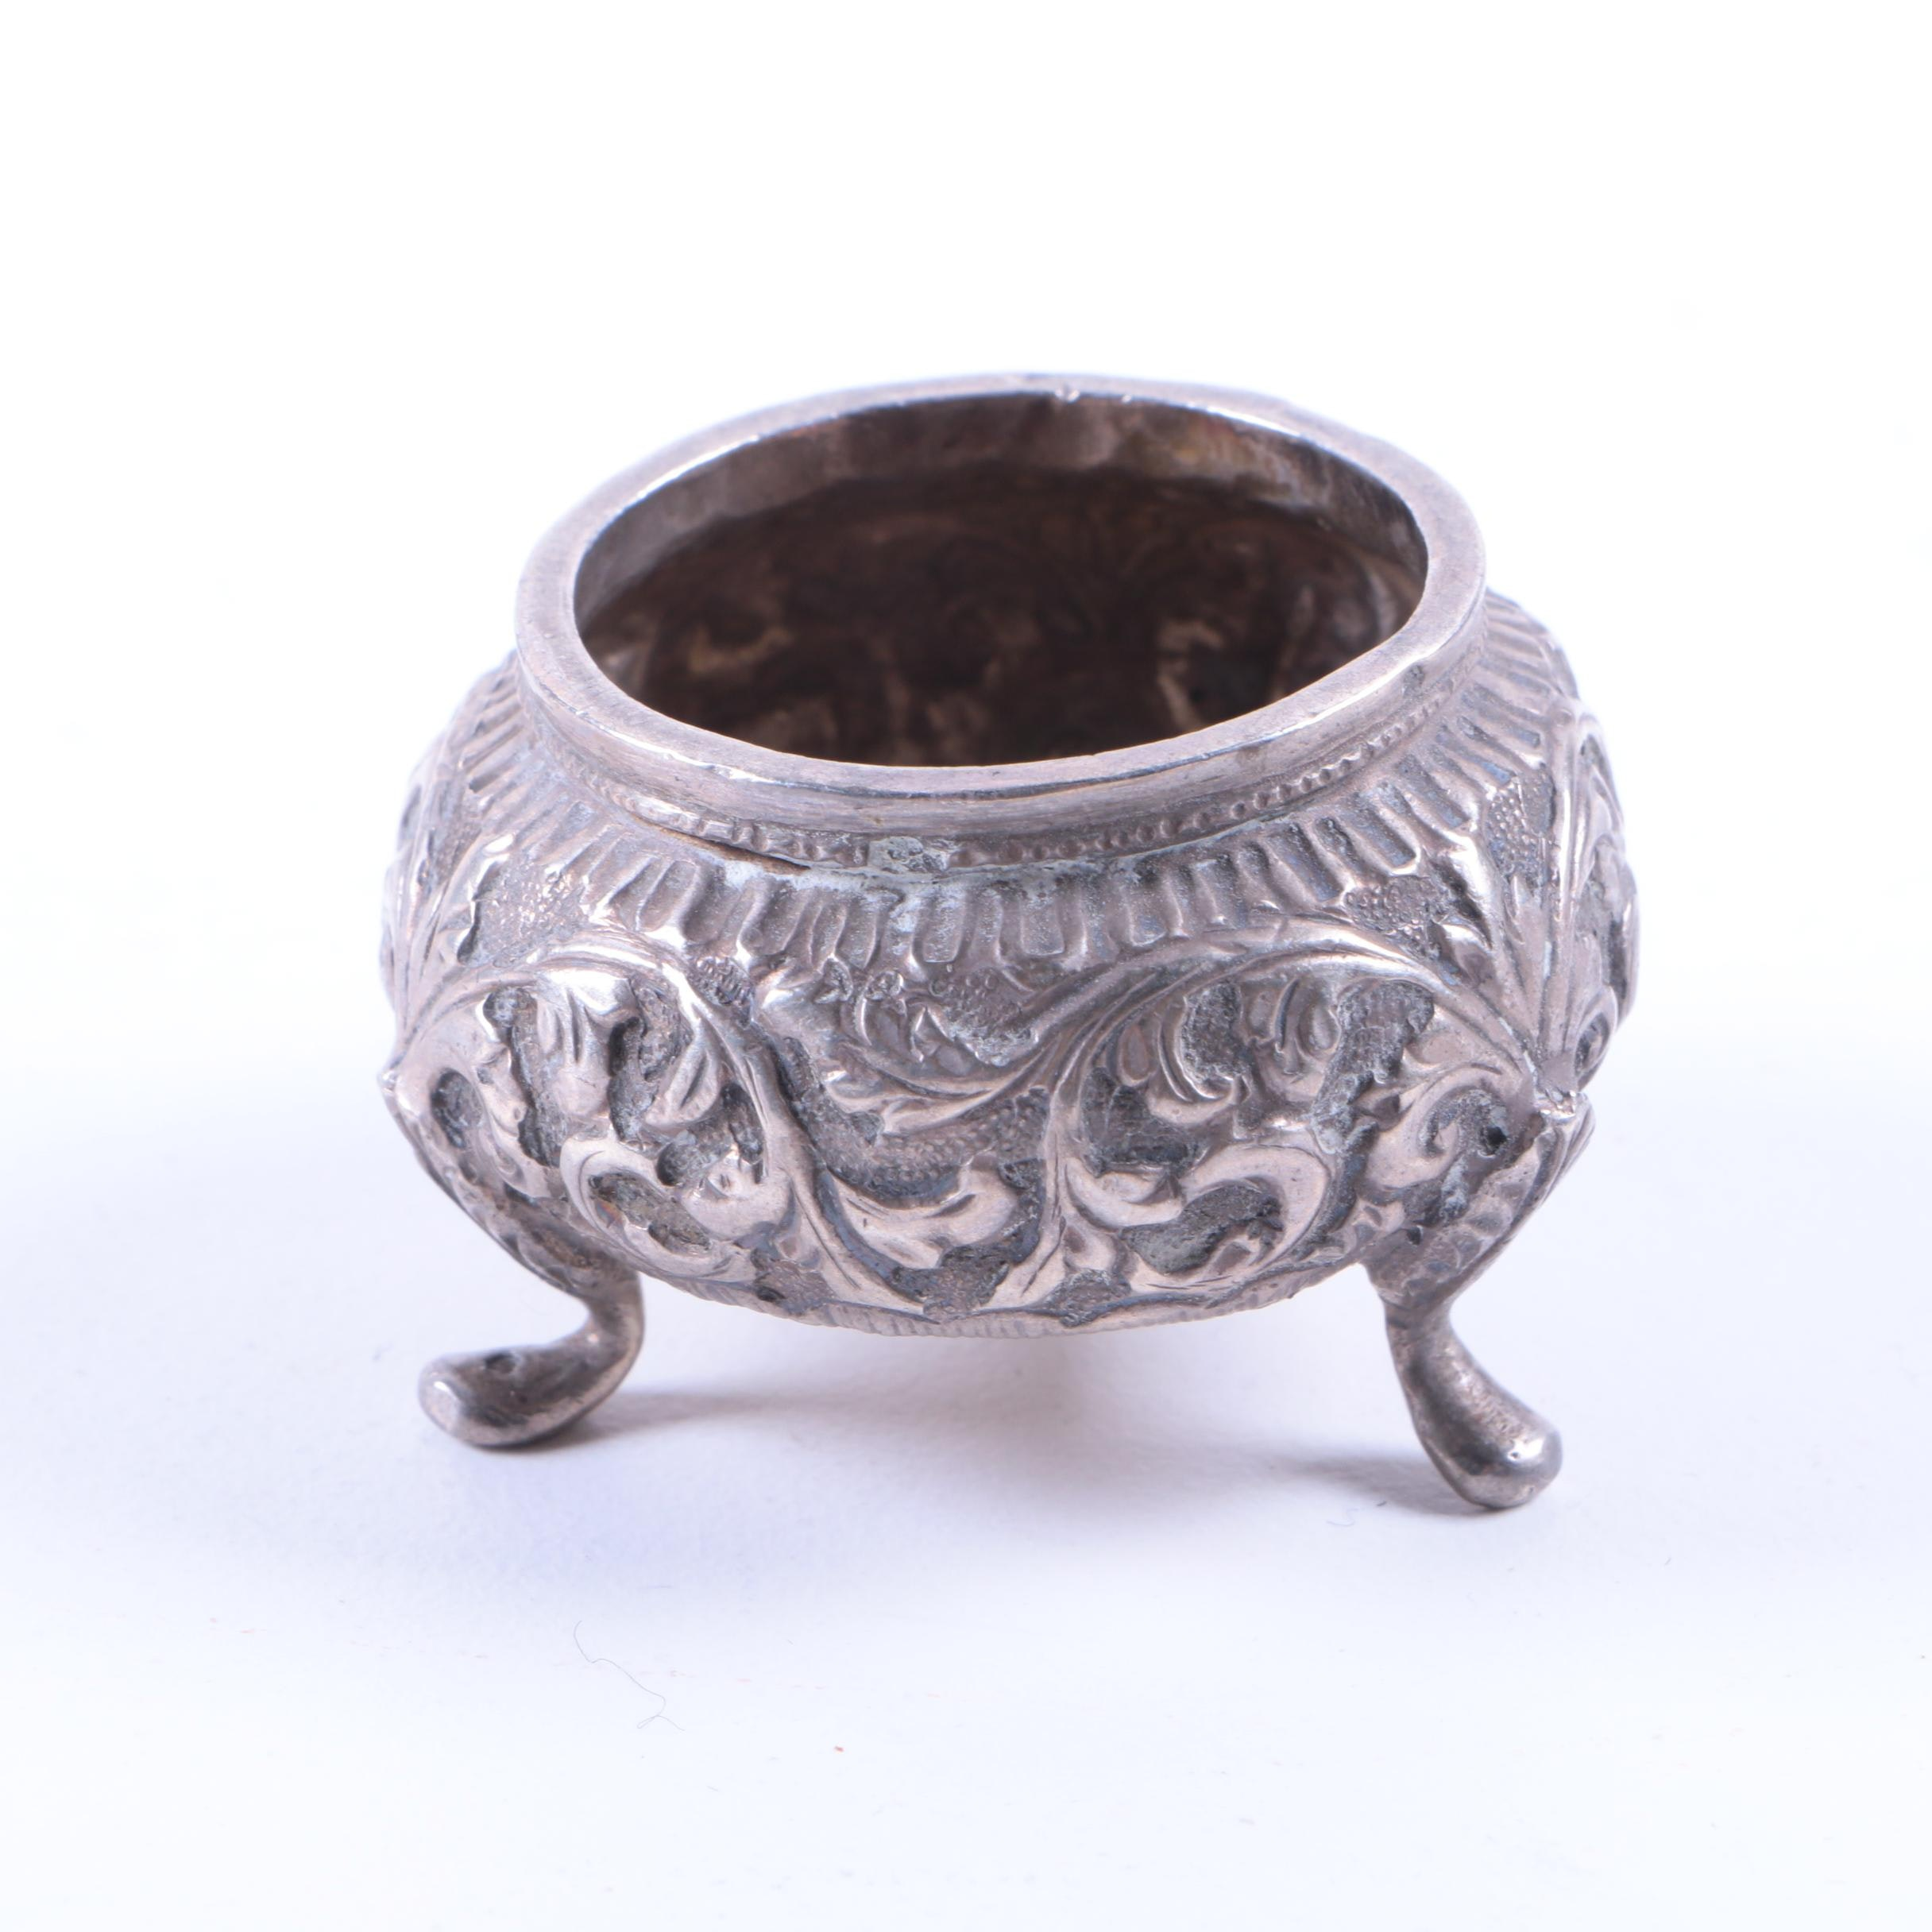 800 Silver Salt Cellar with Acanthus Leaf Accents